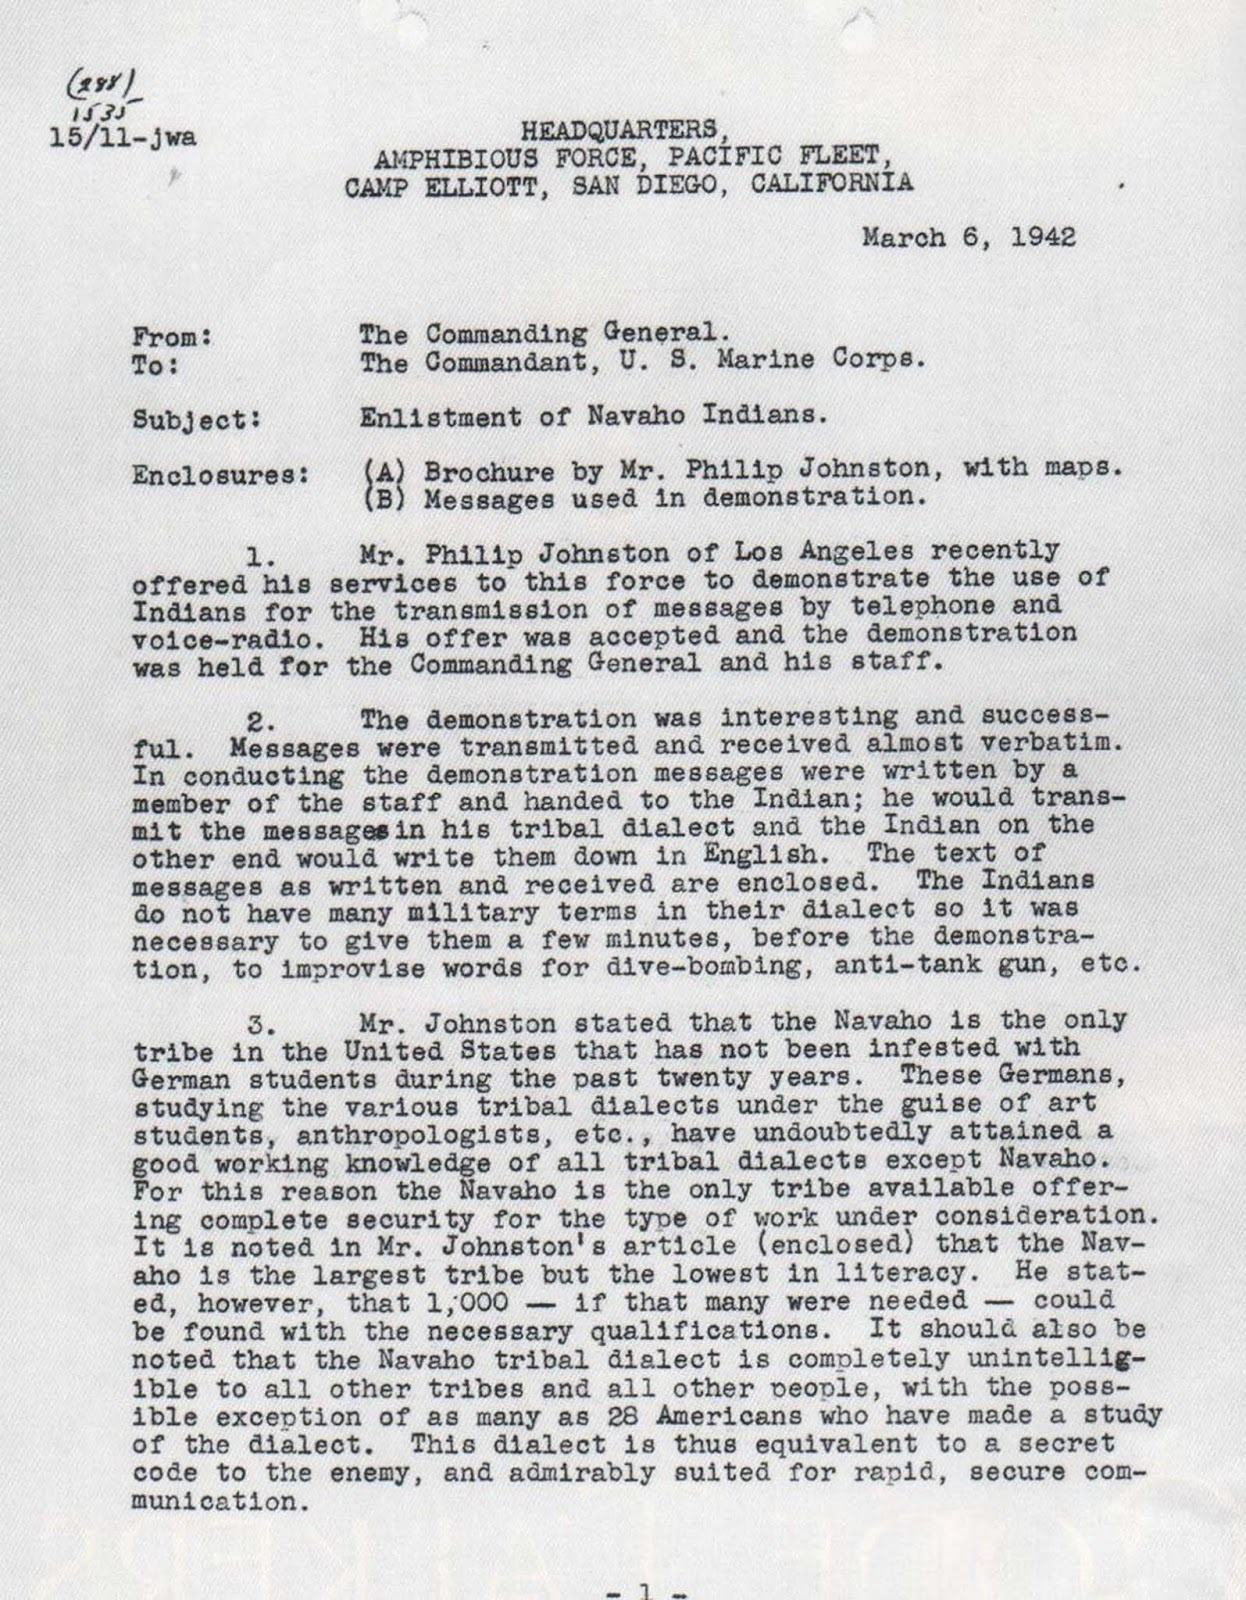 A memorandum from Marine Corps Major General Clayton B. Vogel recommending the enlistment of 200 Navajo code talkers.